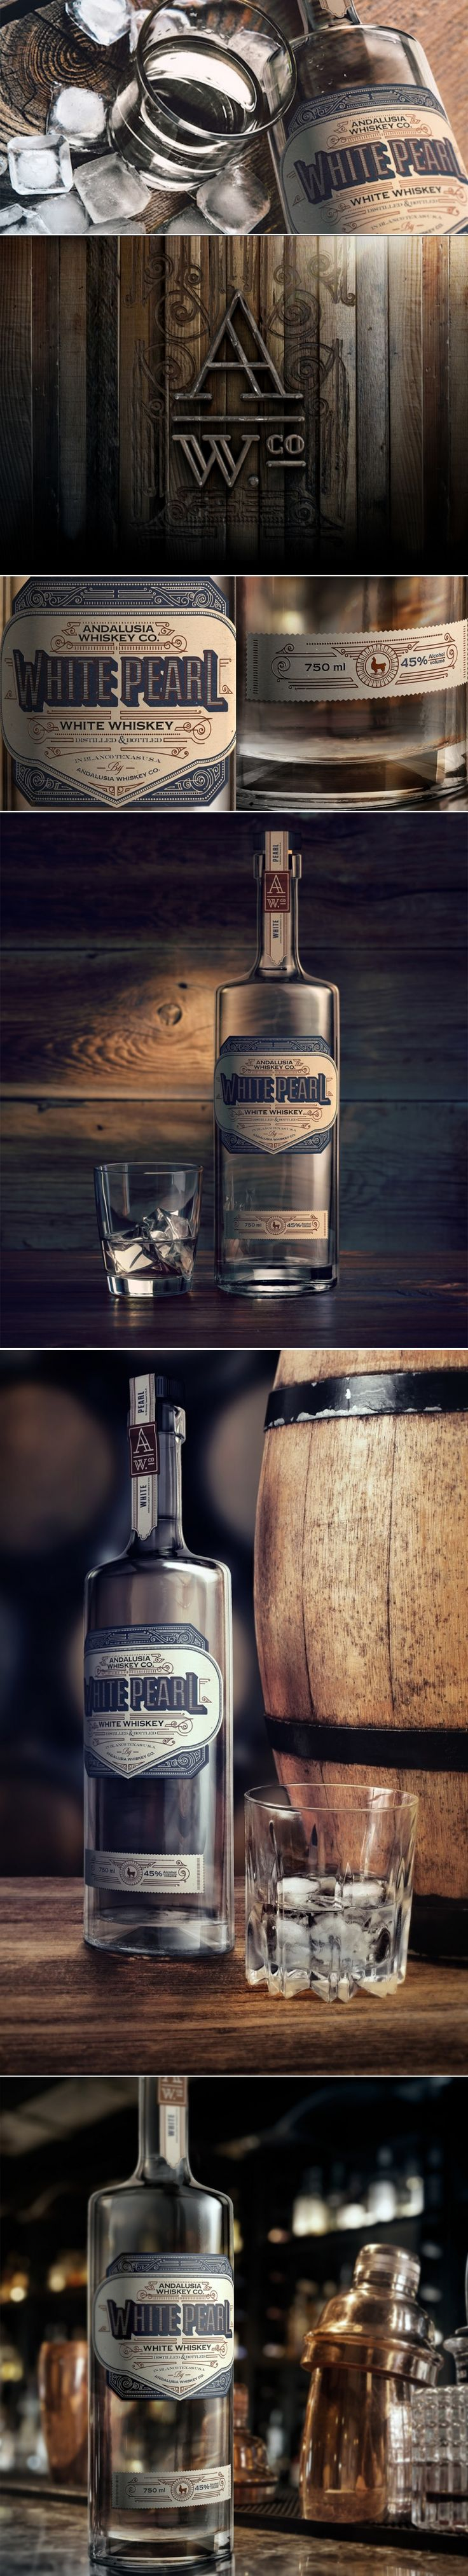 White Pearl by Andalusia Whiskey Co. — The Dieline | Packaging & Branding Design & Innovation News